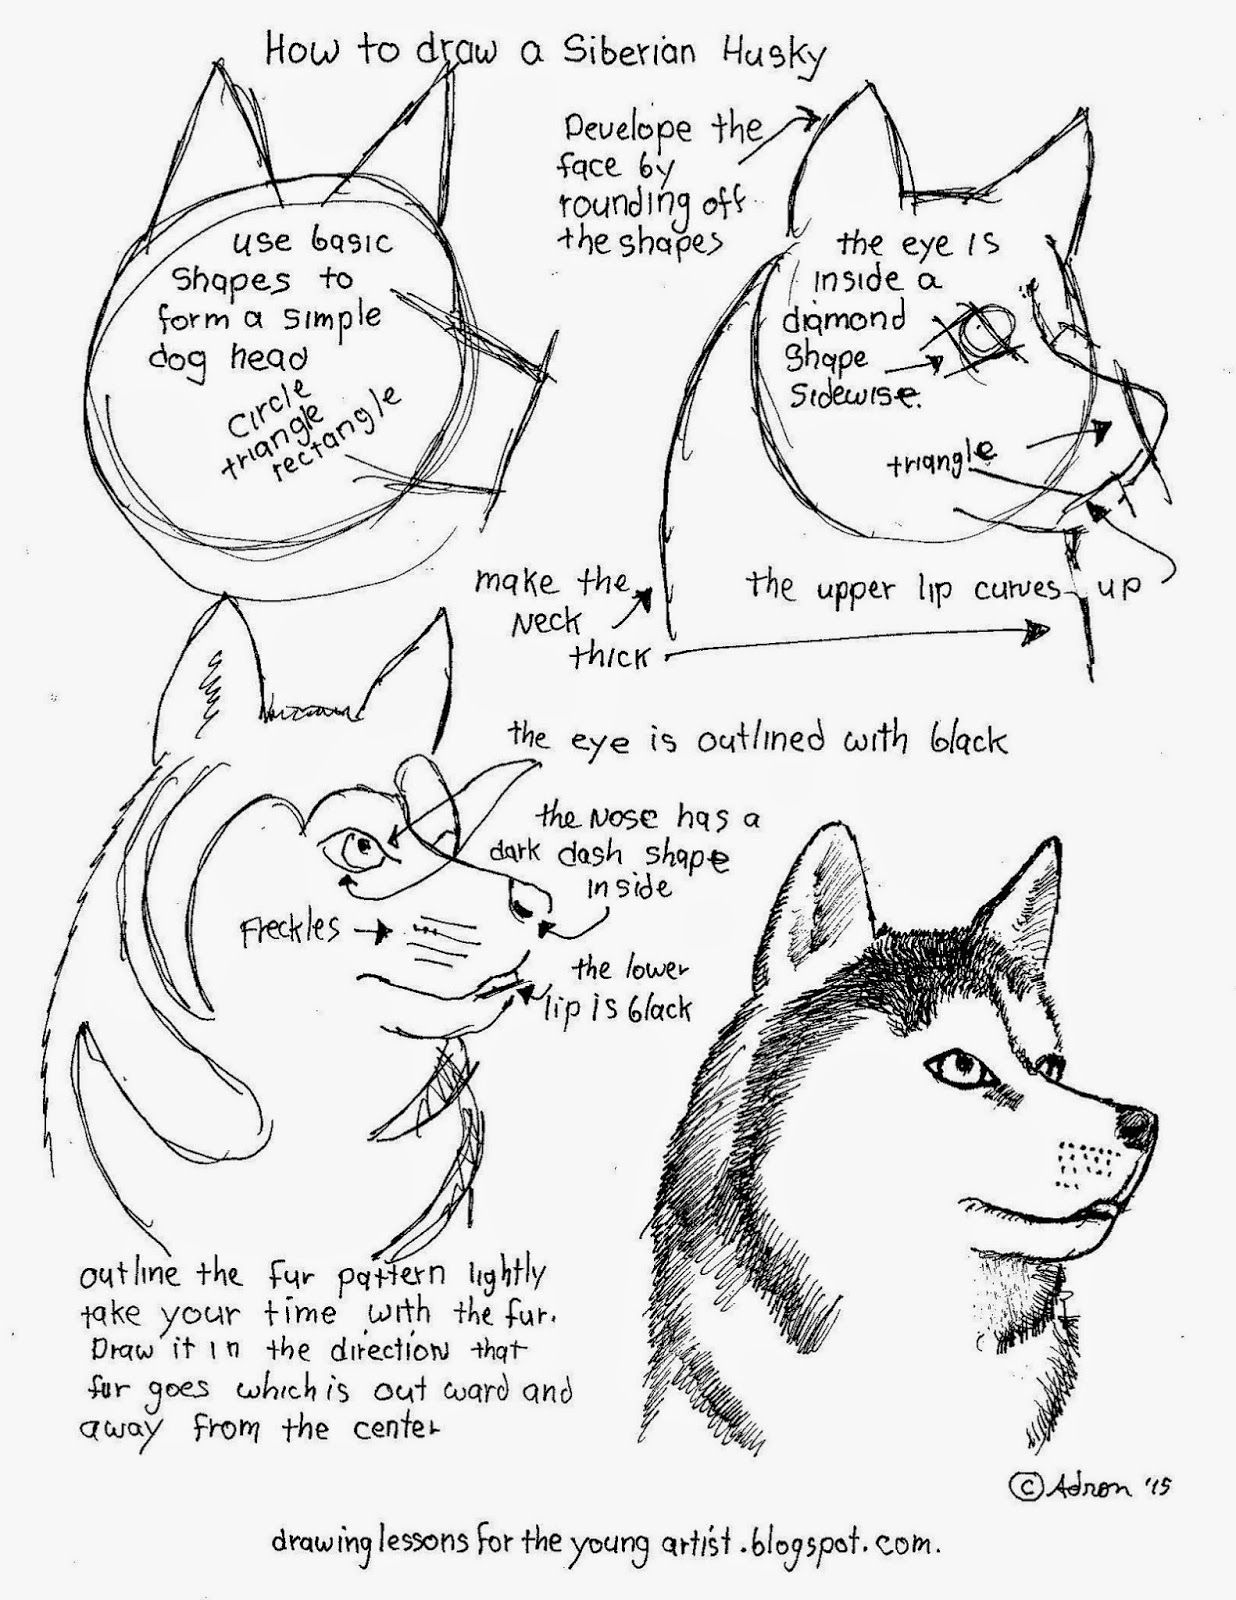 How To Draw A Siberian Husky Free Printable Worksheet Drawings Husky Drawing Drawing Lessons